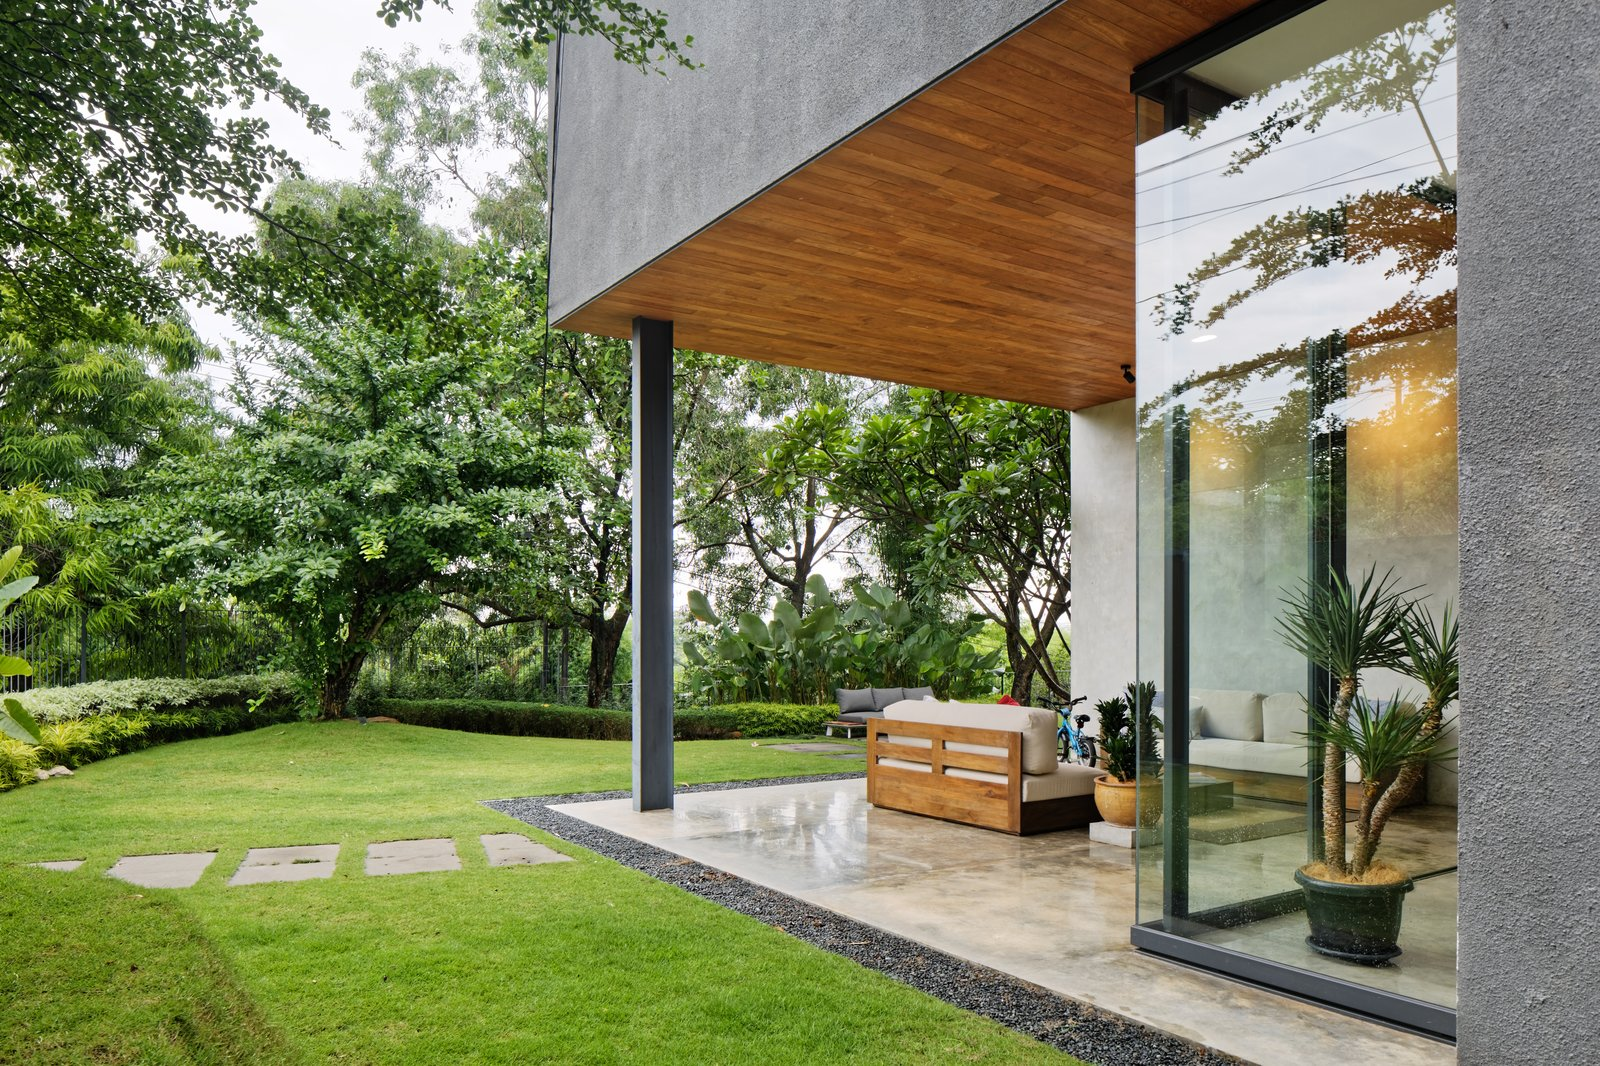 Top 5 Homes of the Week With Lush Outdoor Spaces